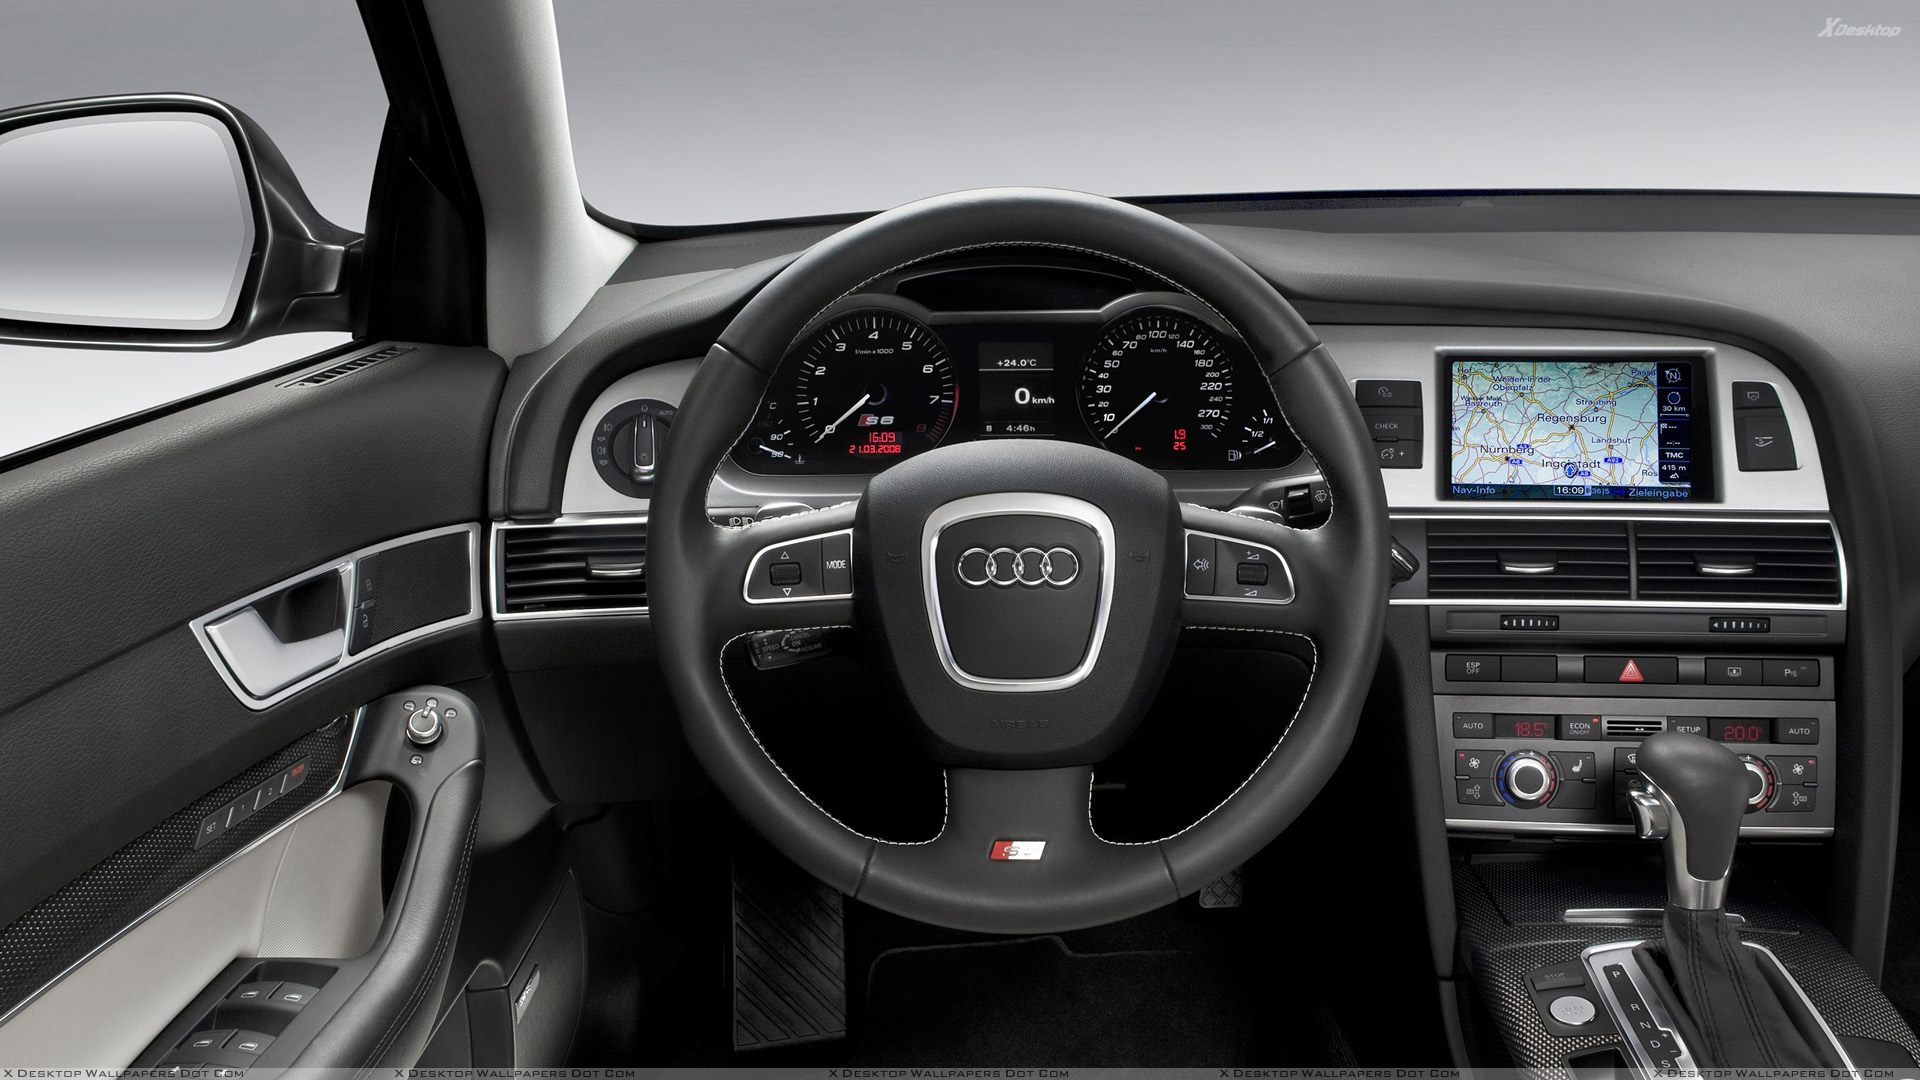 580ps audi rs 6 car dashboard wallpaper. Black Bedroom Furniture Sets. Home Design Ideas